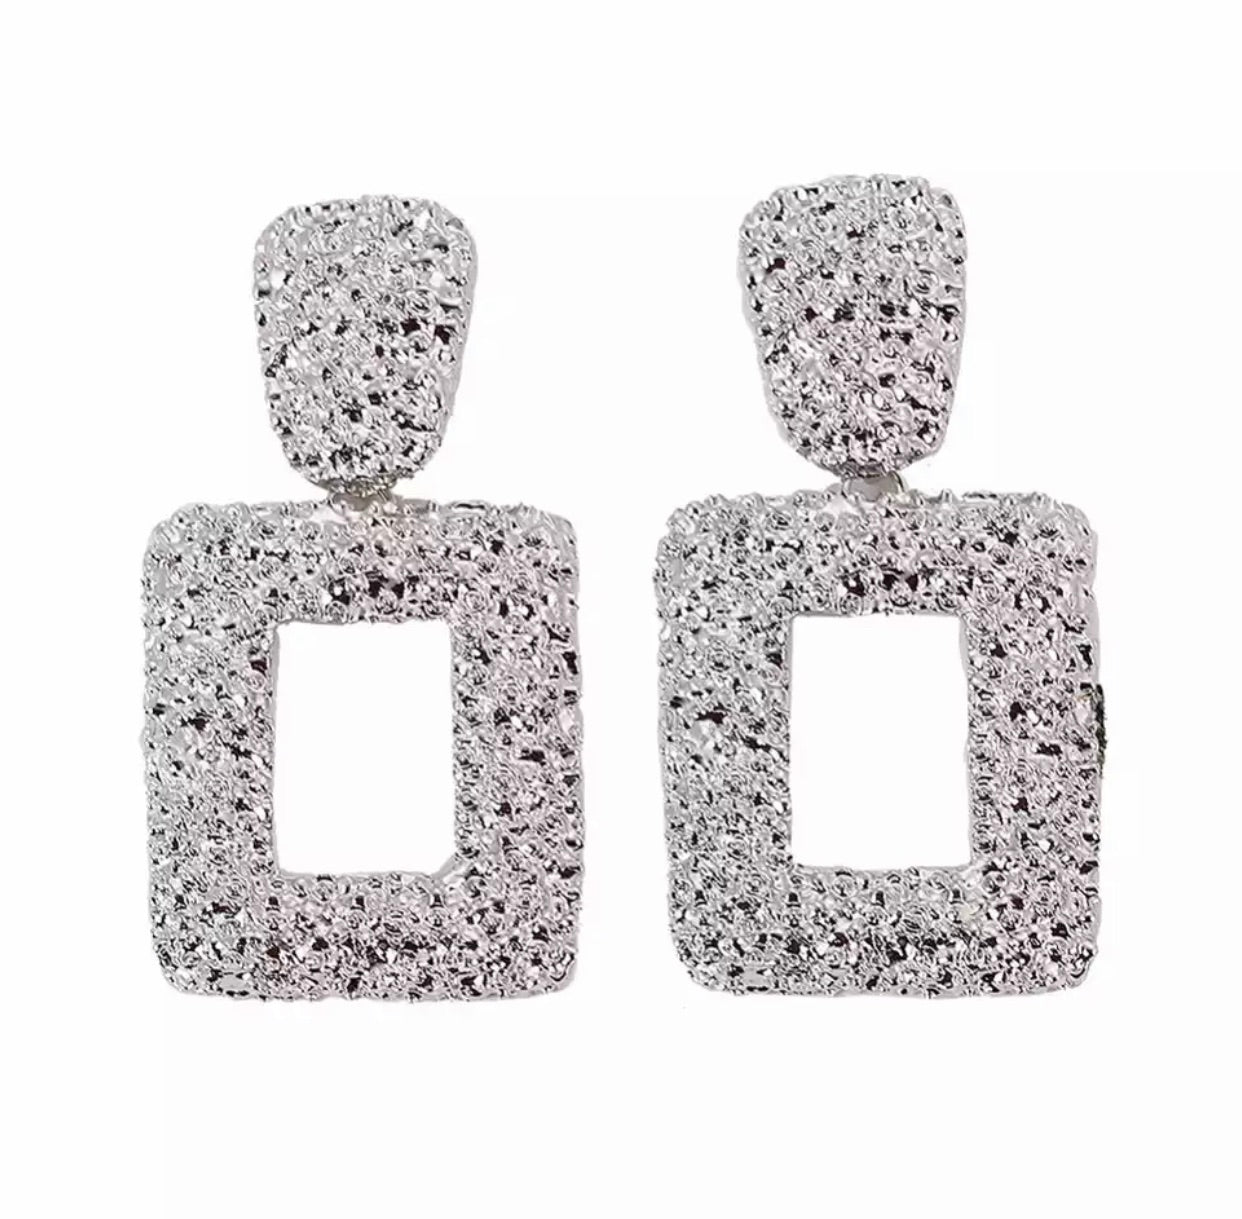 Samira - Square textured statement earring - 3 colours